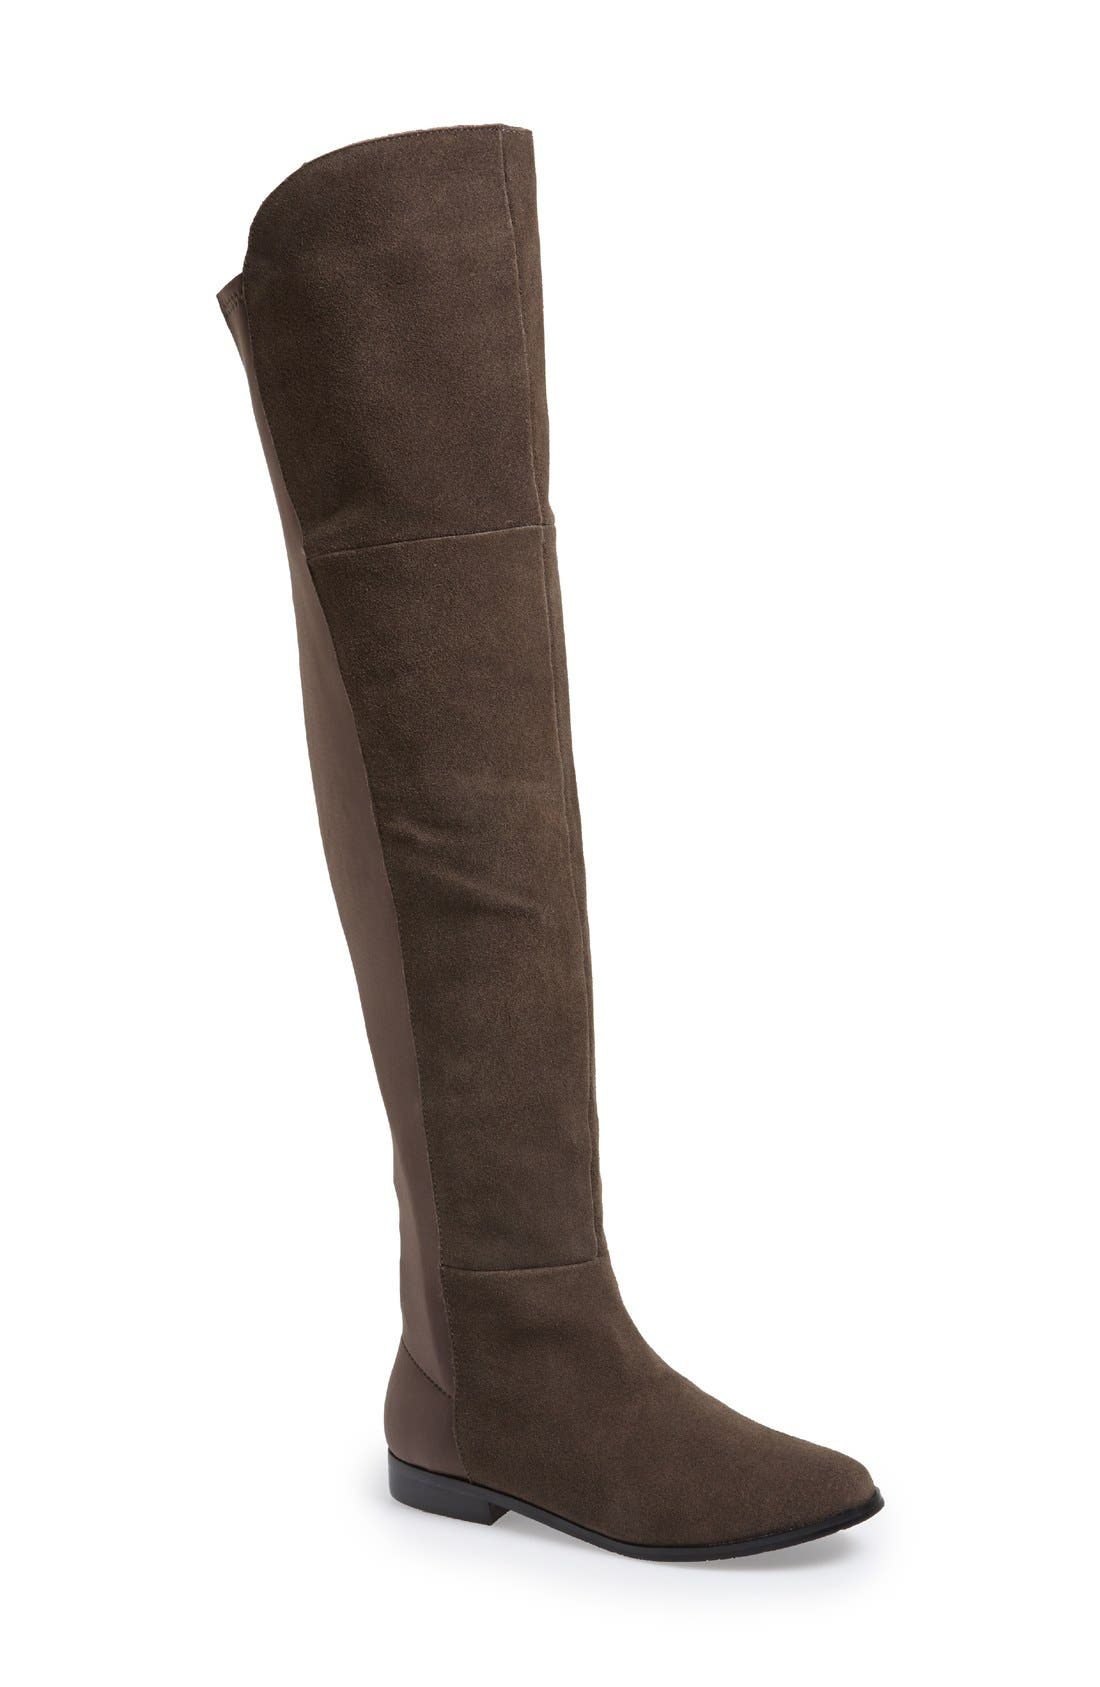 Main Image - Chinese Laundry 'Riley' Stretch Back Suede Over The Knee Boot (Women)